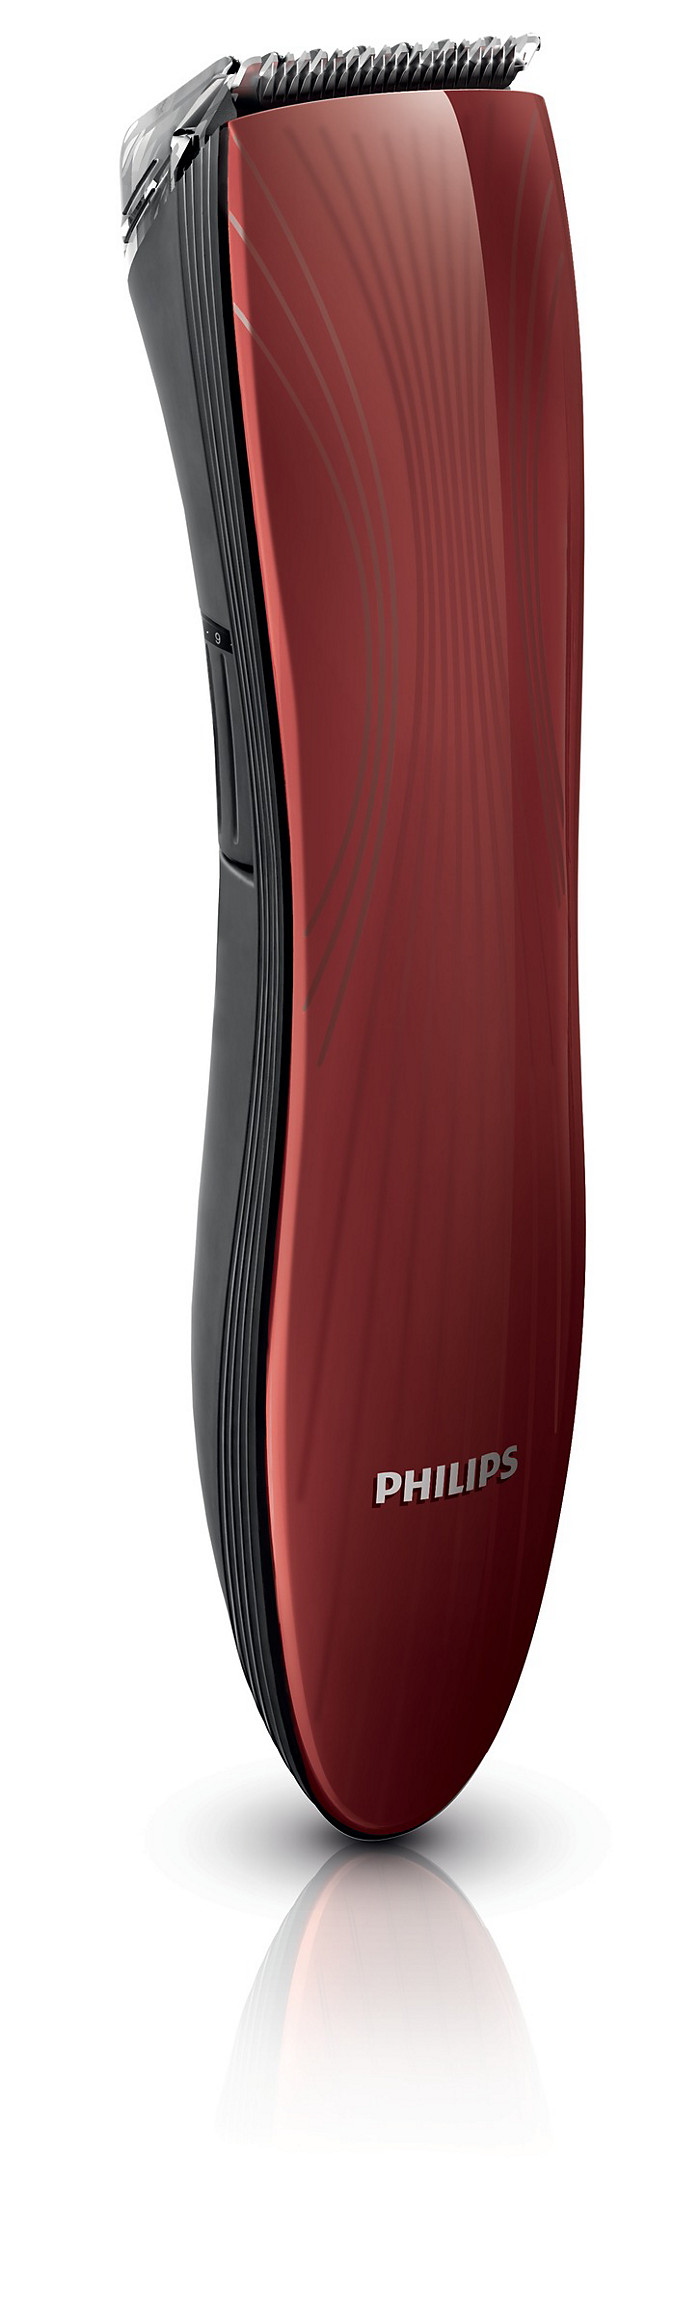 buy the philips beardtrimmer series 5000 waterproof stubble trimmer qt4022 32. Black Bedroom Furniture Sets. Home Design Ideas